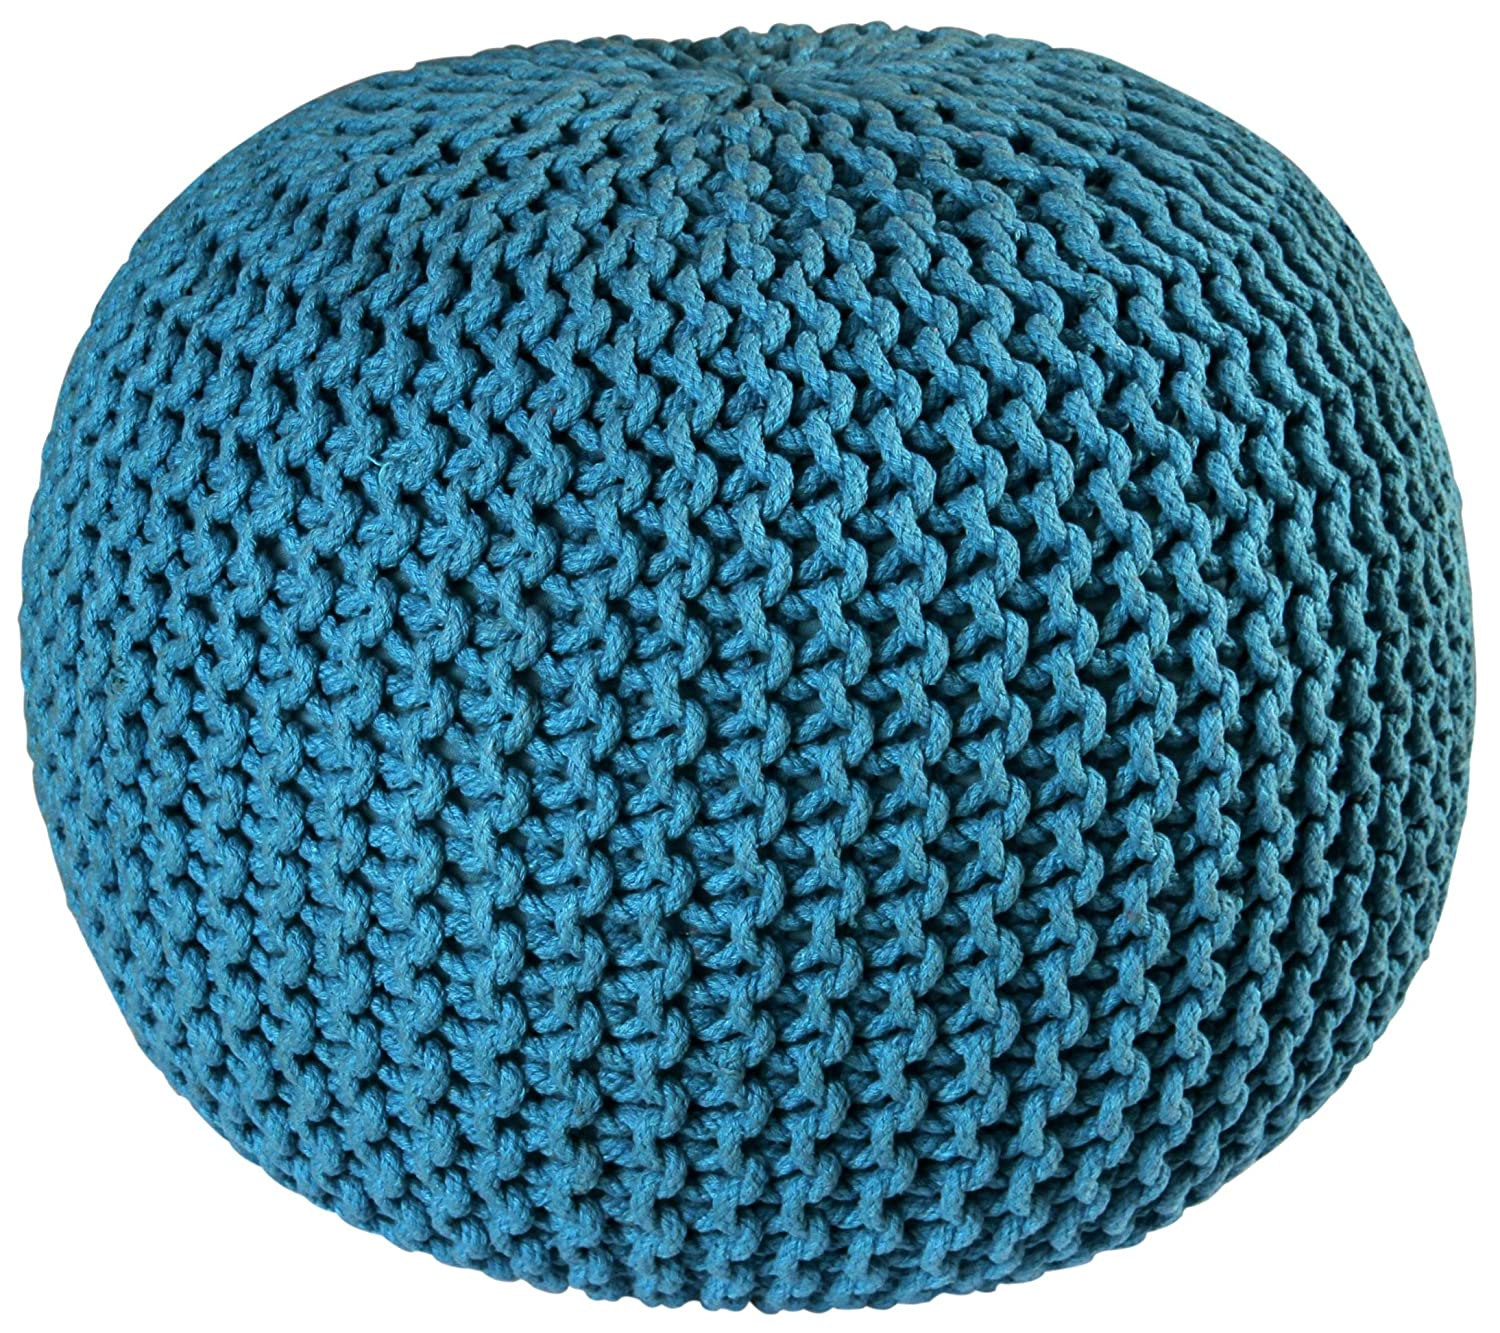 Pouf Ottoman Cotton Rope Green St 16-Inch Croix Trading Company DROPSHIP FCR1801